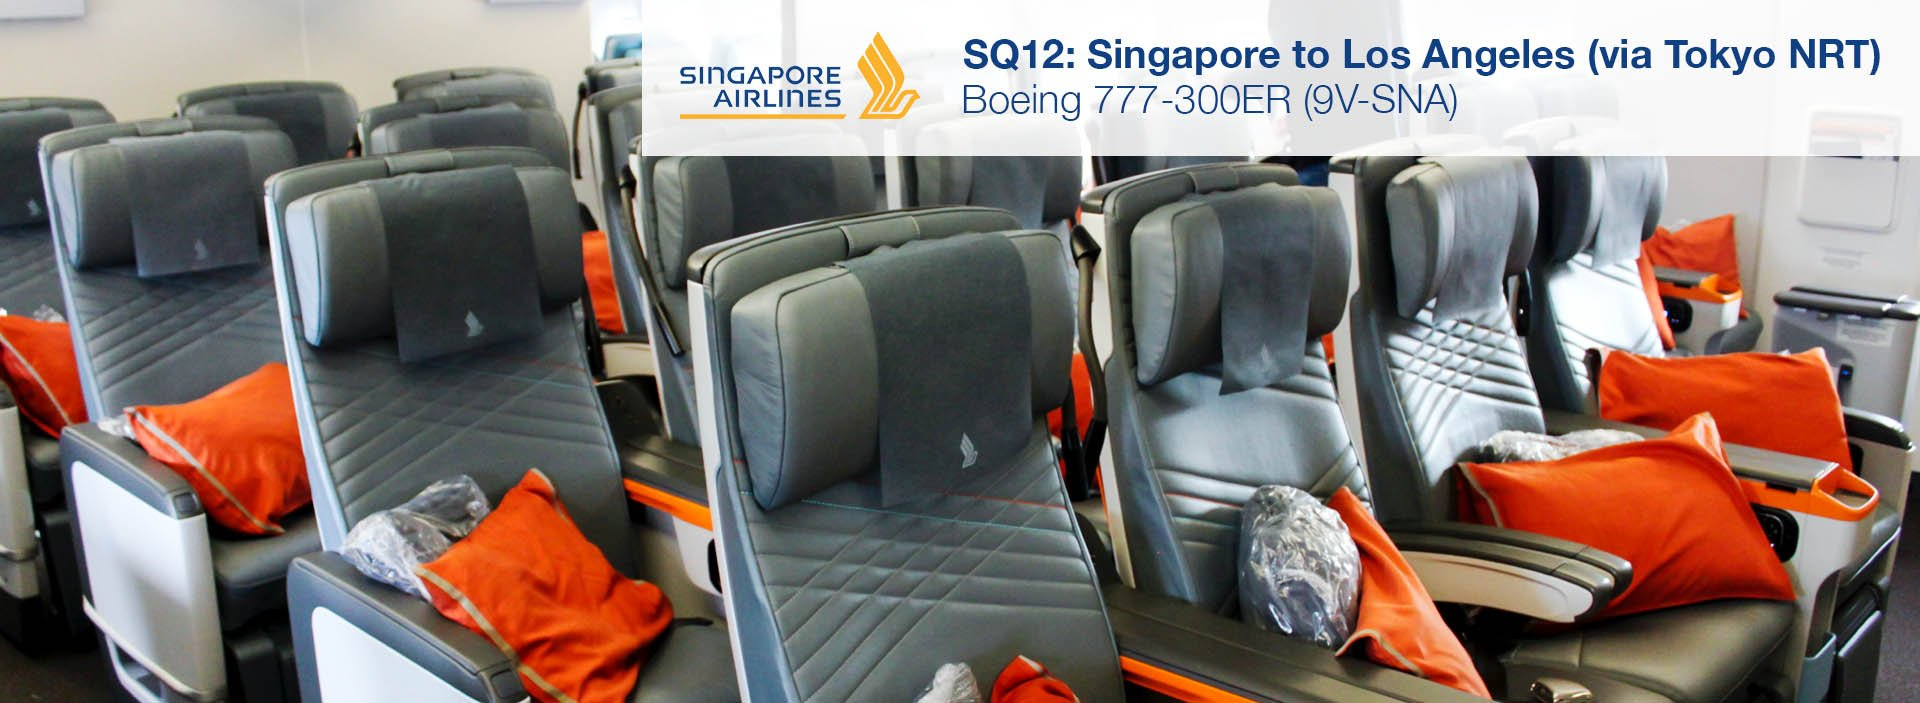 Flight Review: Singapore Airlines 777-300ER Premium Economy from Singapore to Los Angeles via Tokyo NRT